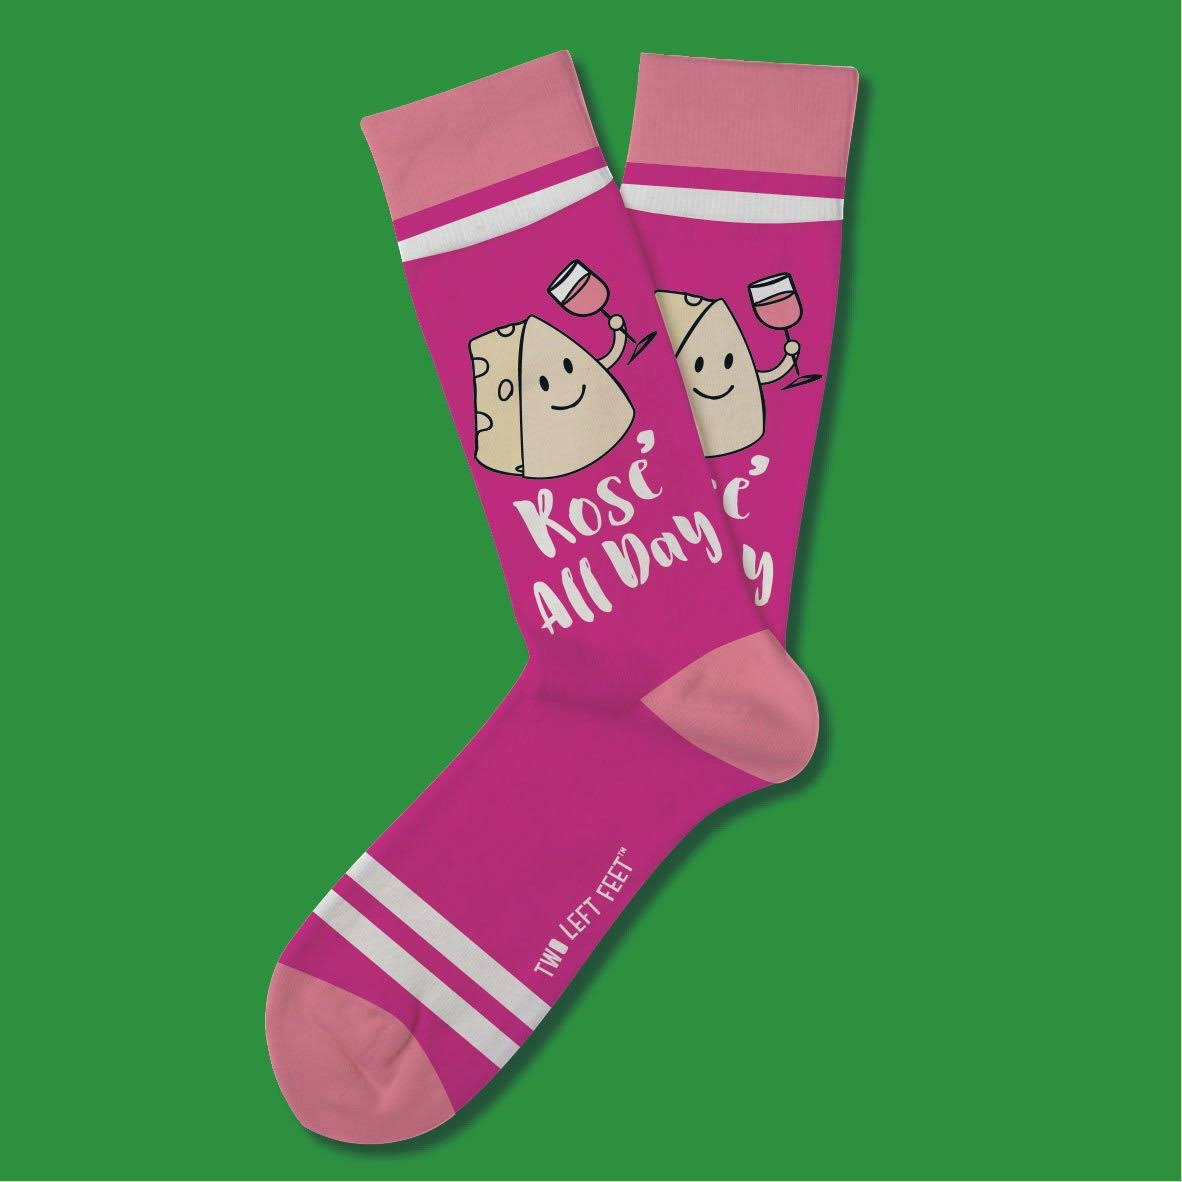 Two Left Feet Sock Co. Women's Sock Pink 'Rose All Day' Socks S/M